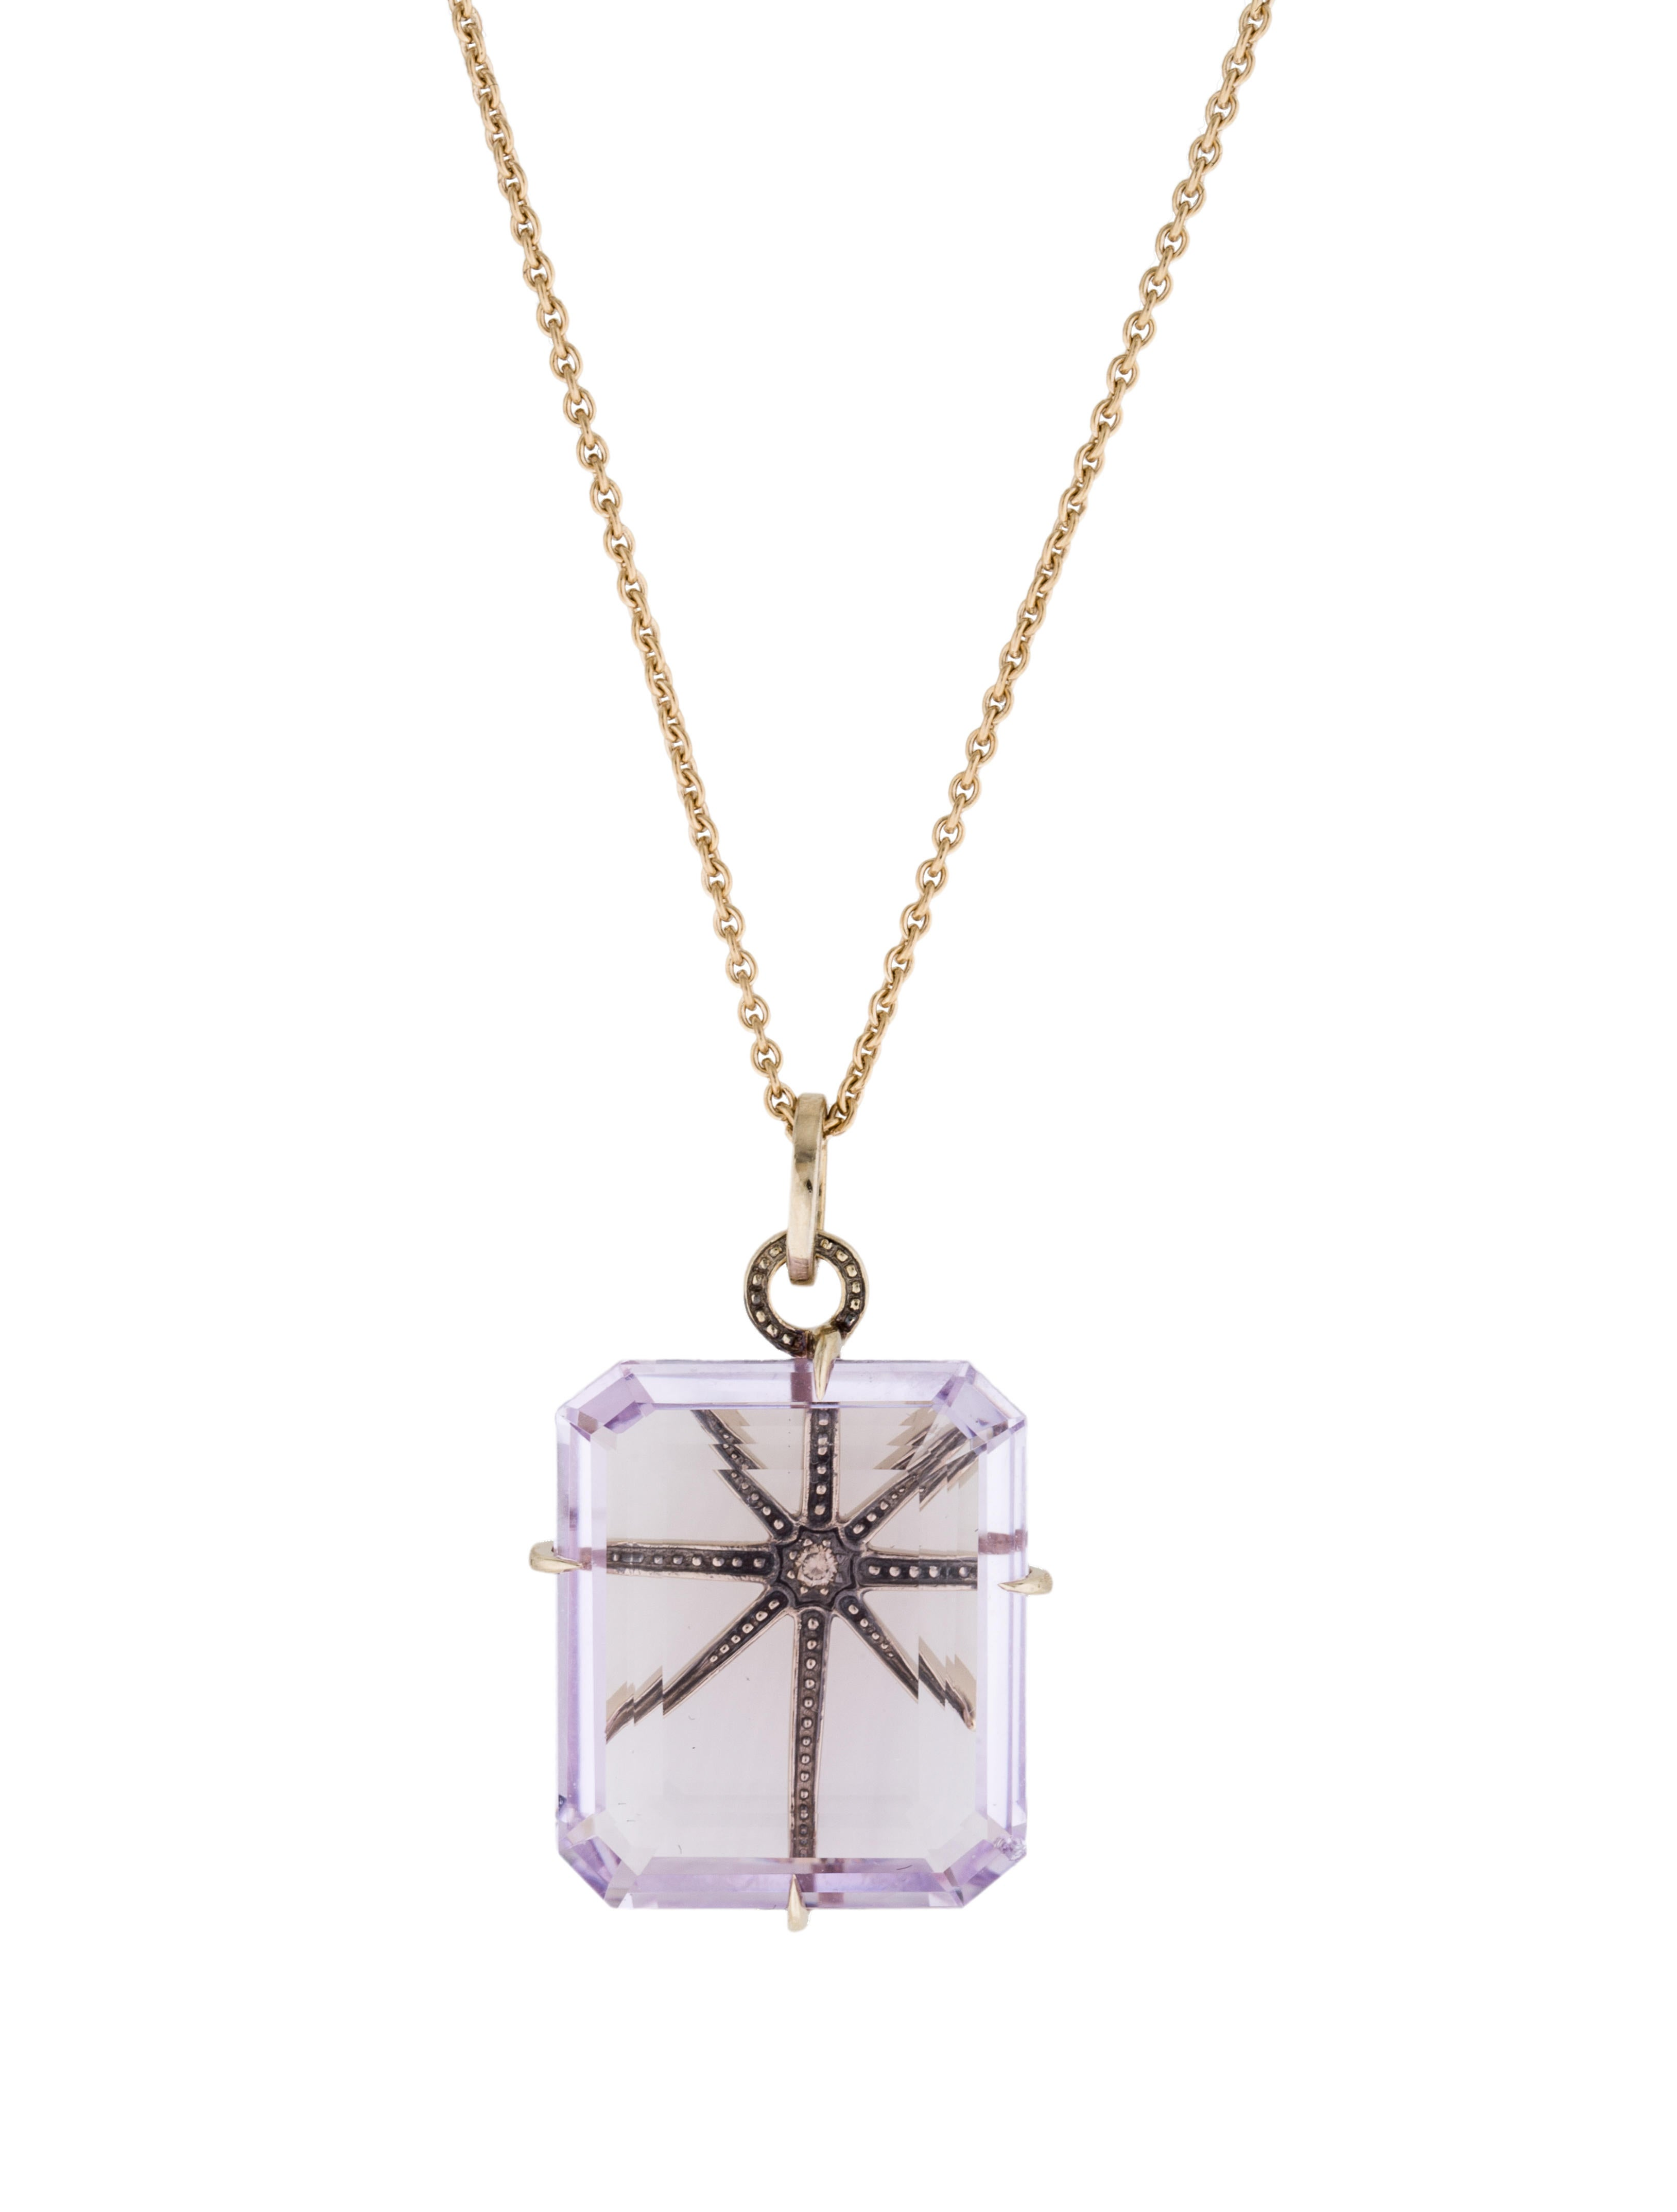 H Stern 18K Amethyst & Diamond Highlight Stars Pendant Necklace